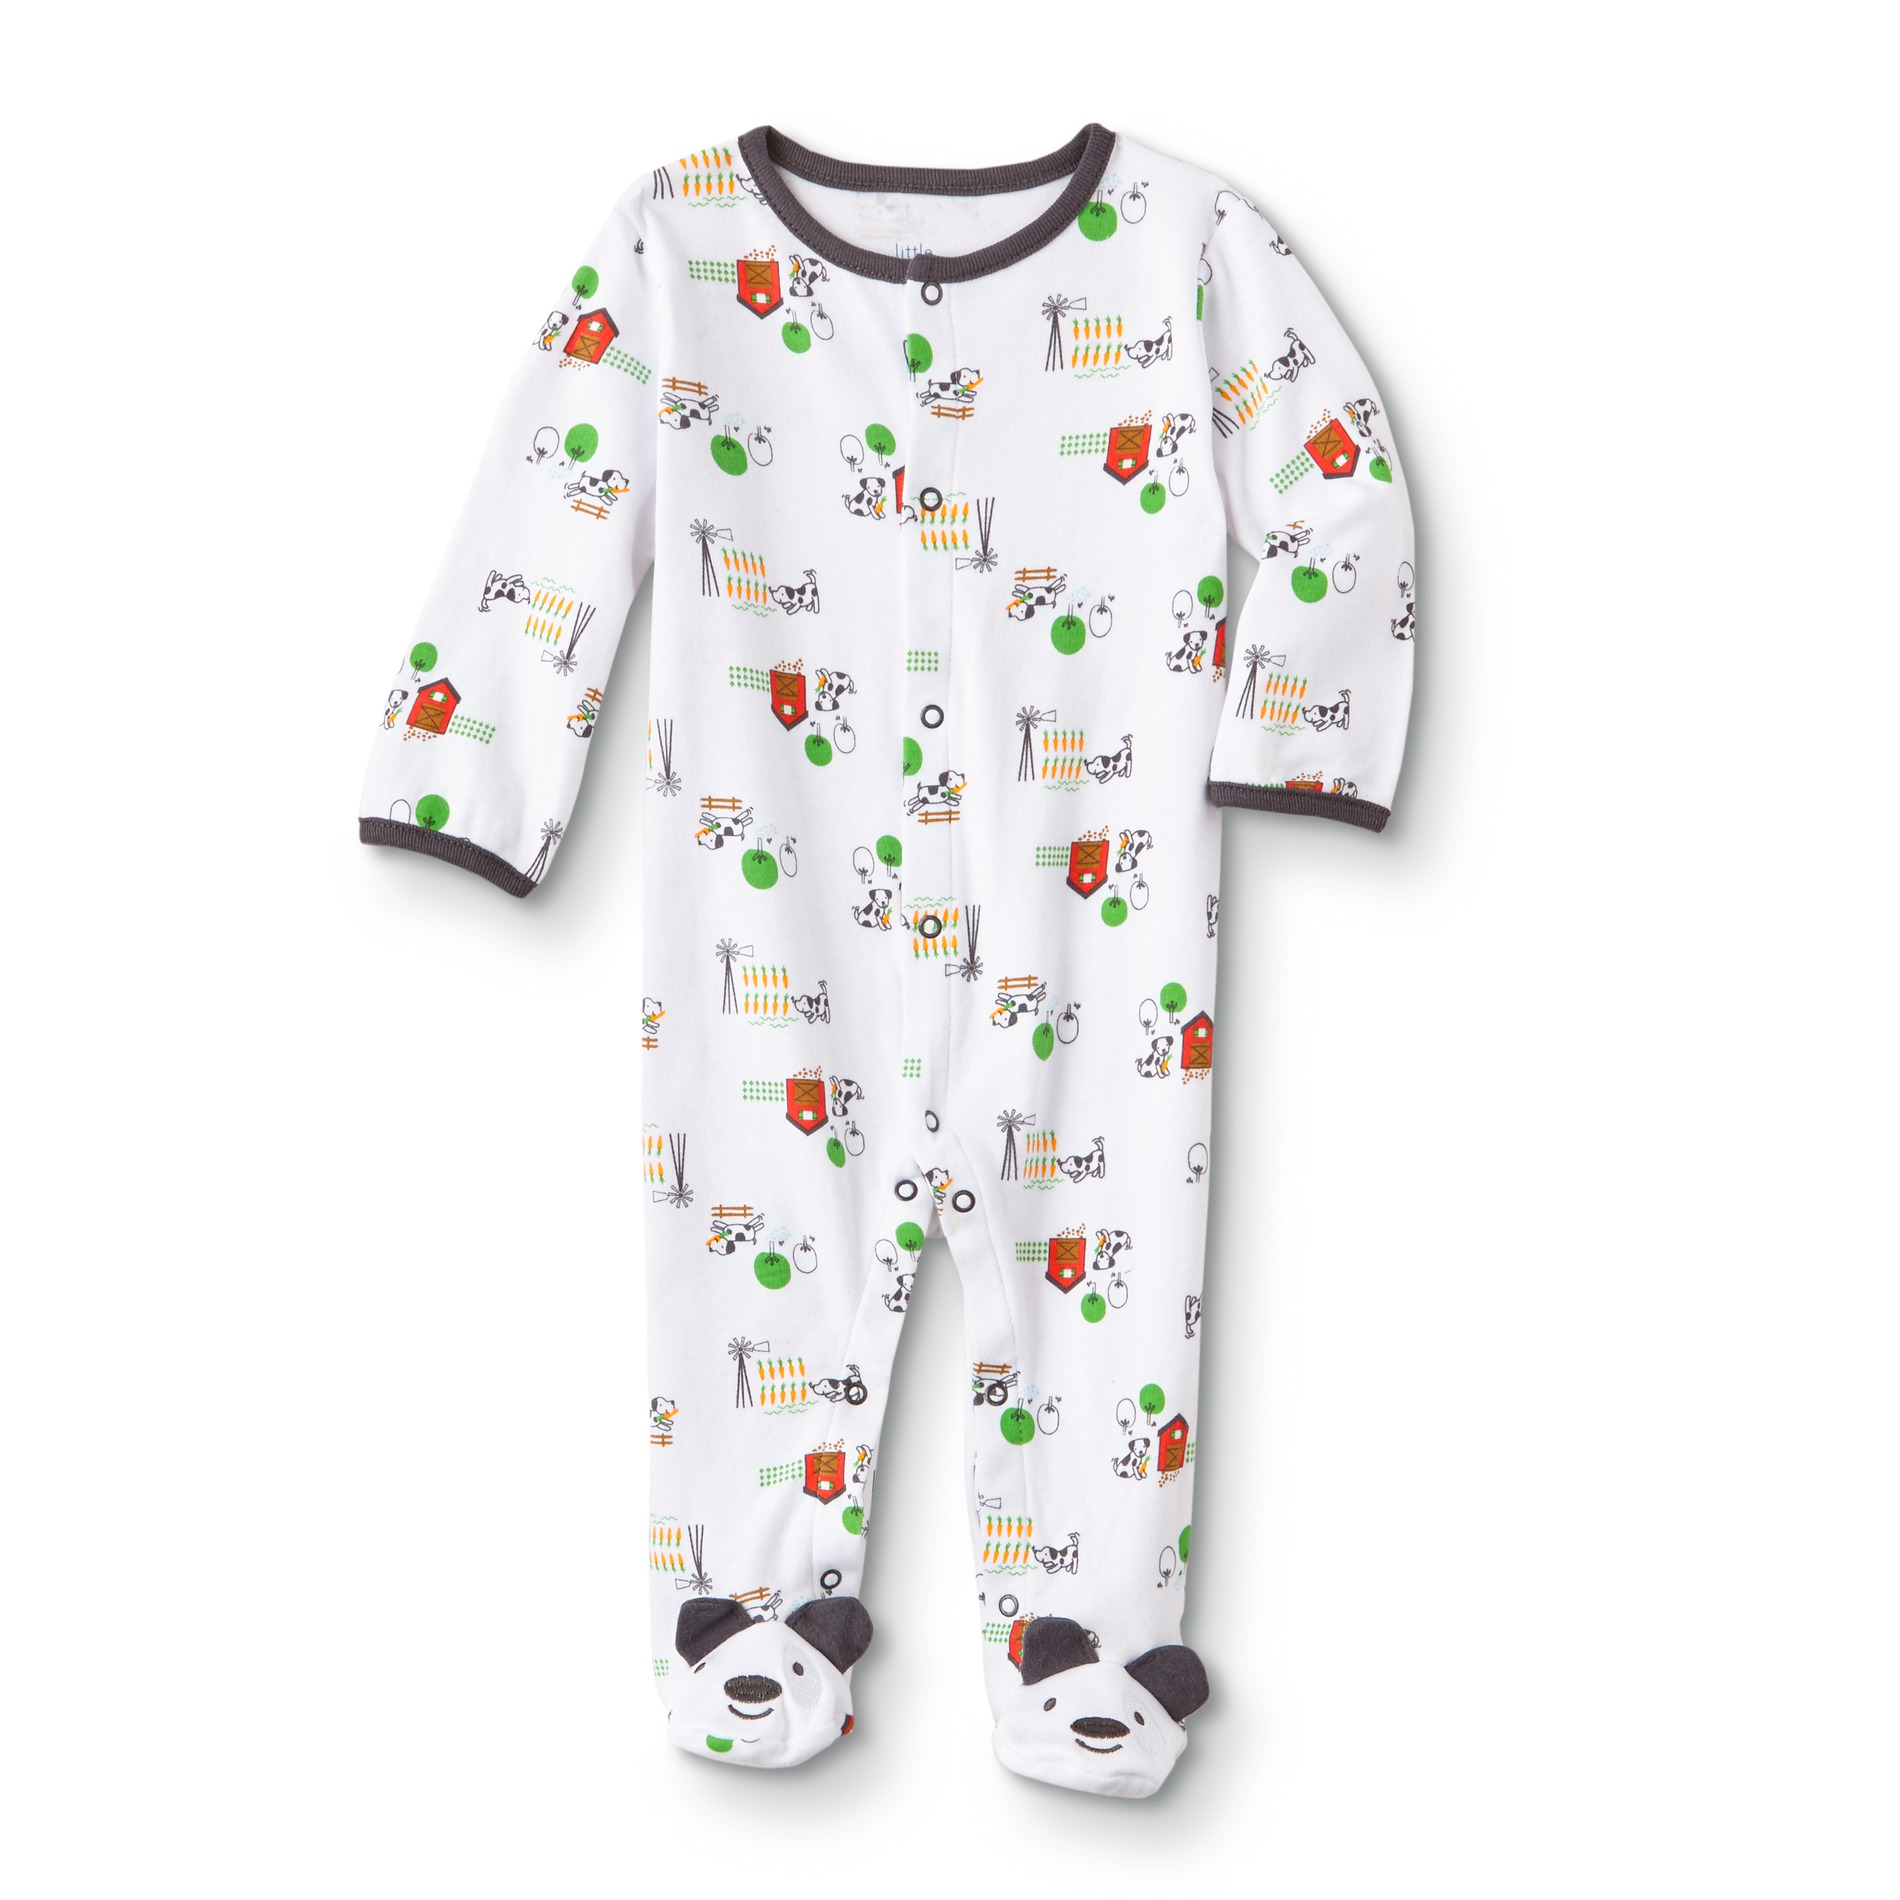 Baby Clothing On Clearance Sears